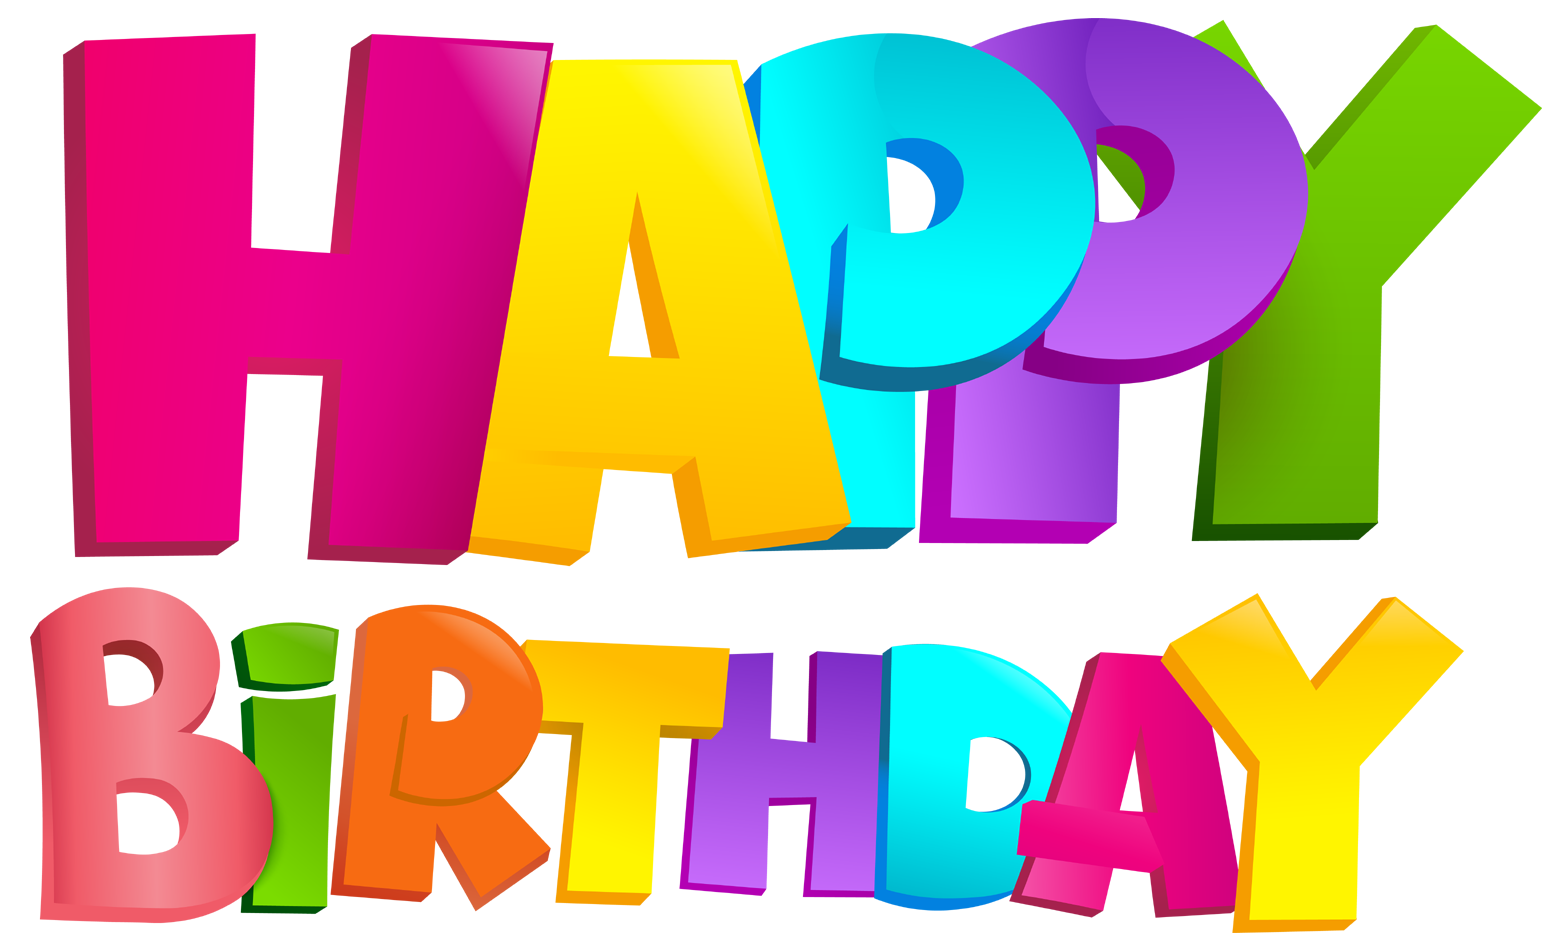 Birthday Png Images - Happy Birthday PNG Images Transparent Free Download | PNGMart.com